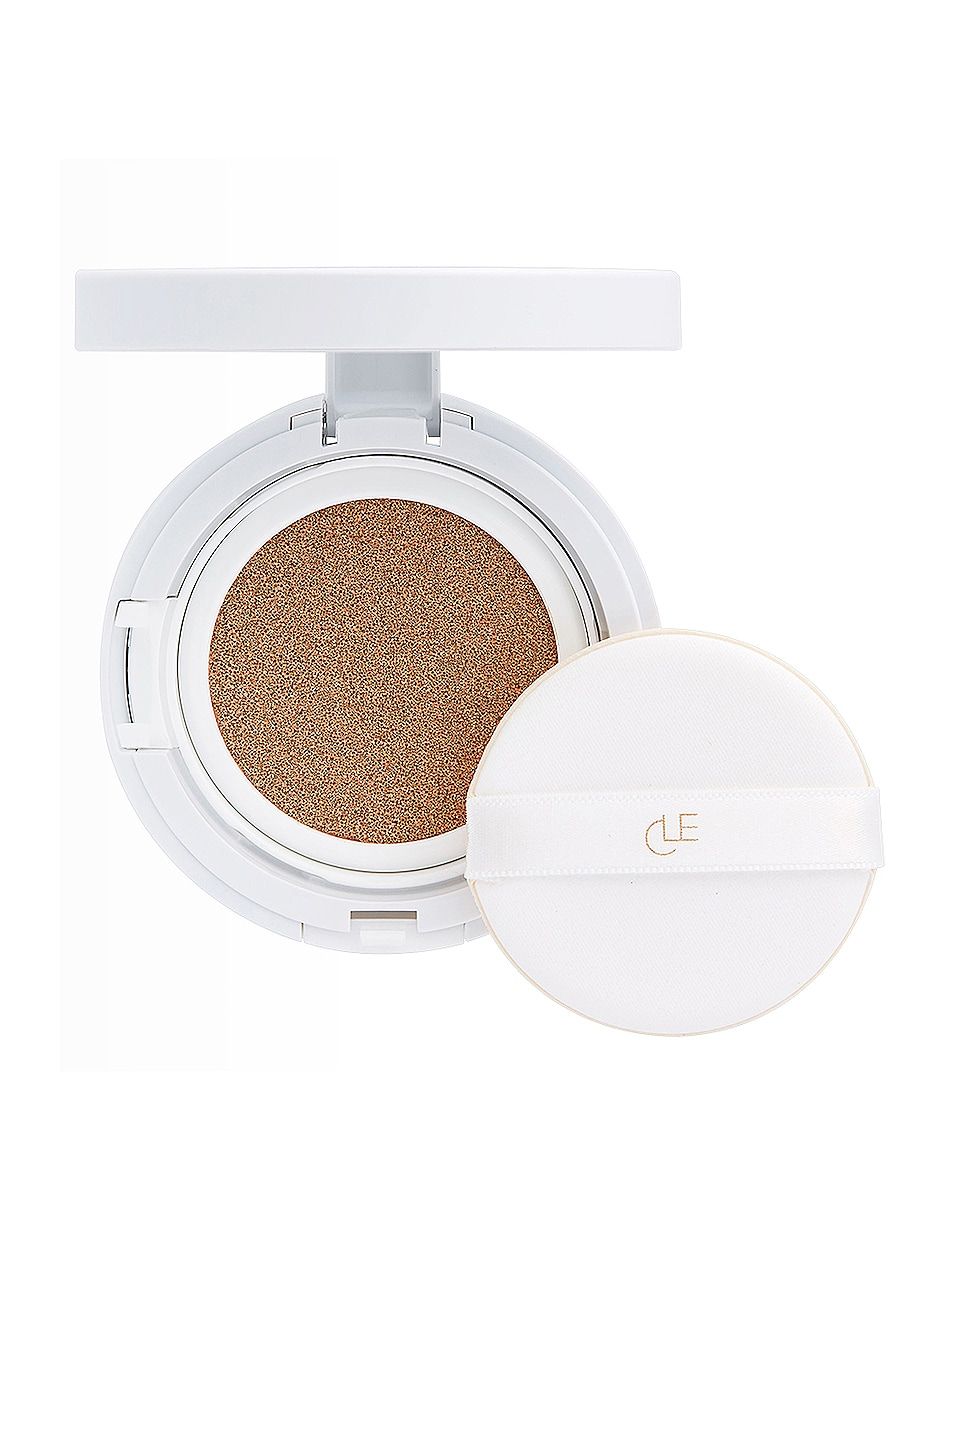 Cle Cosmetics Essence Air Cushion Foundation in Medium Light